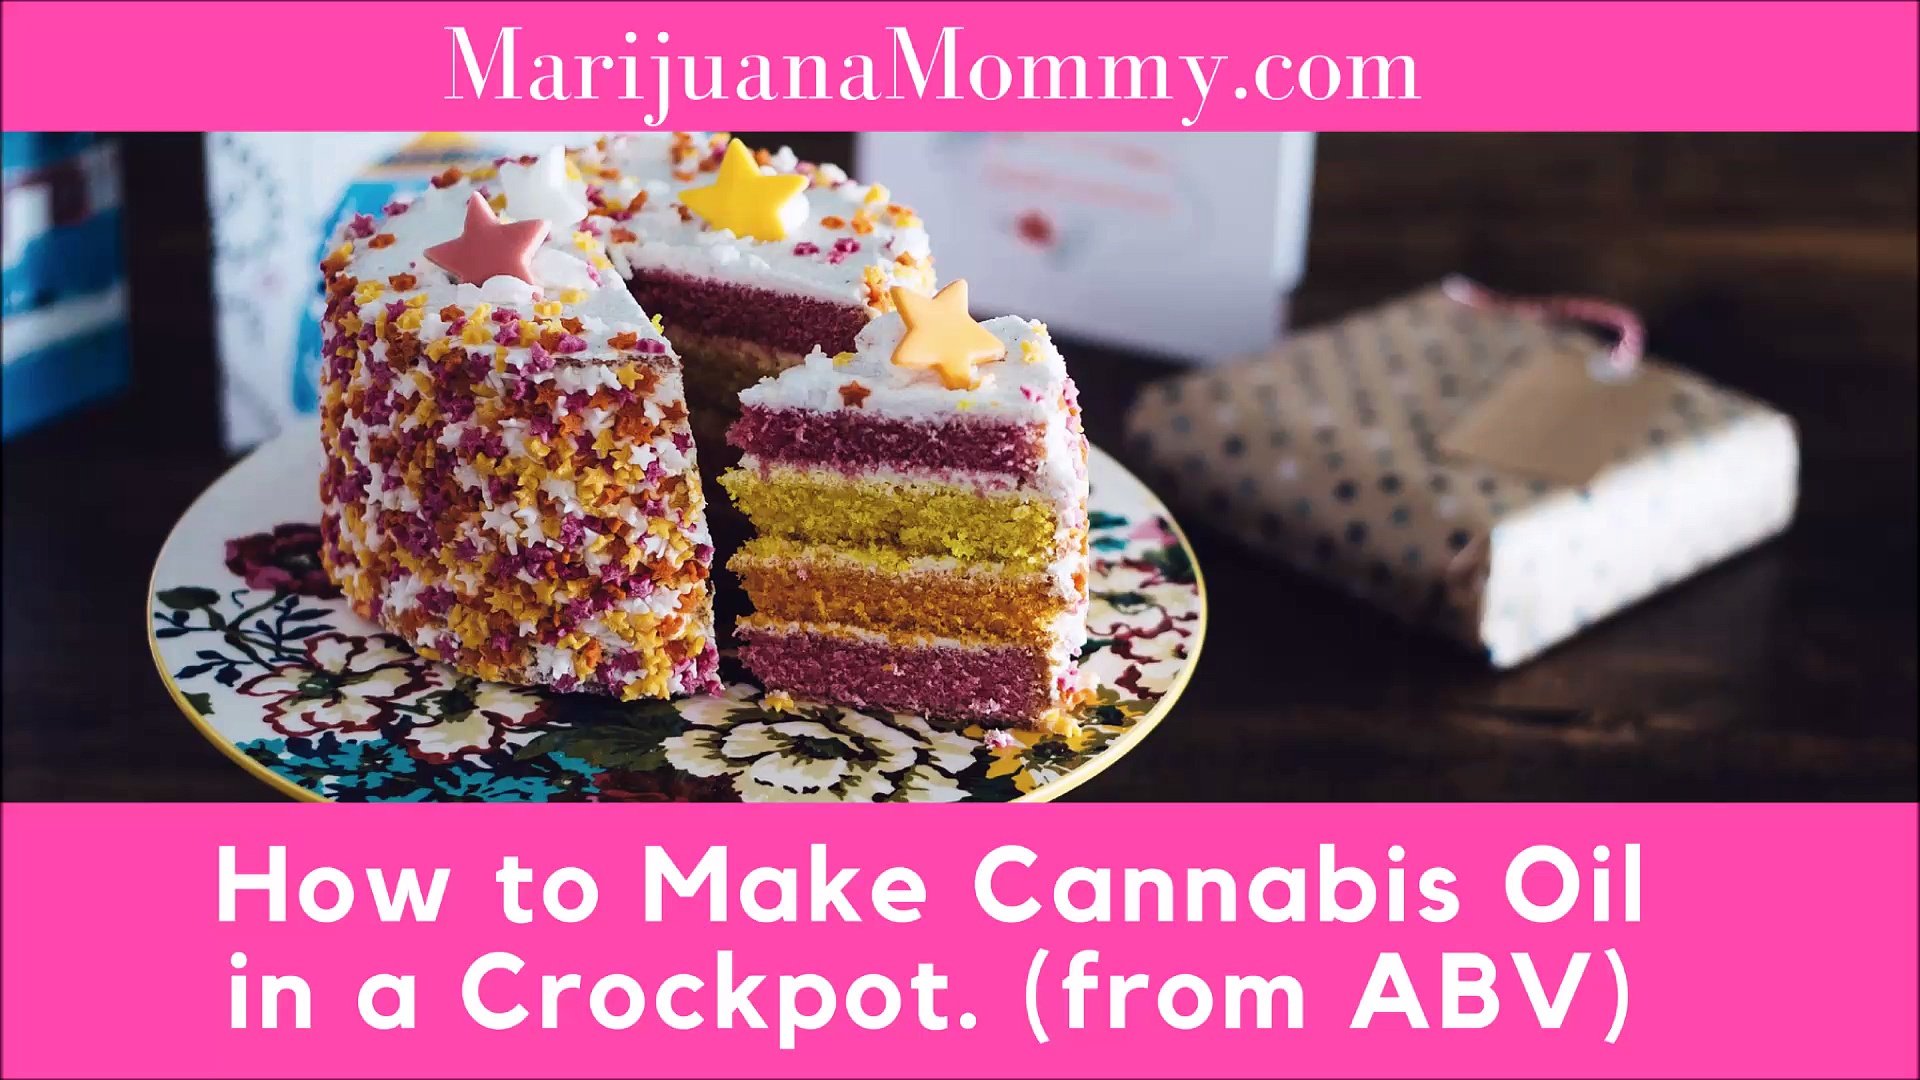 How to Make ABV Oil in the Crockpot from Vaporized Cannabis